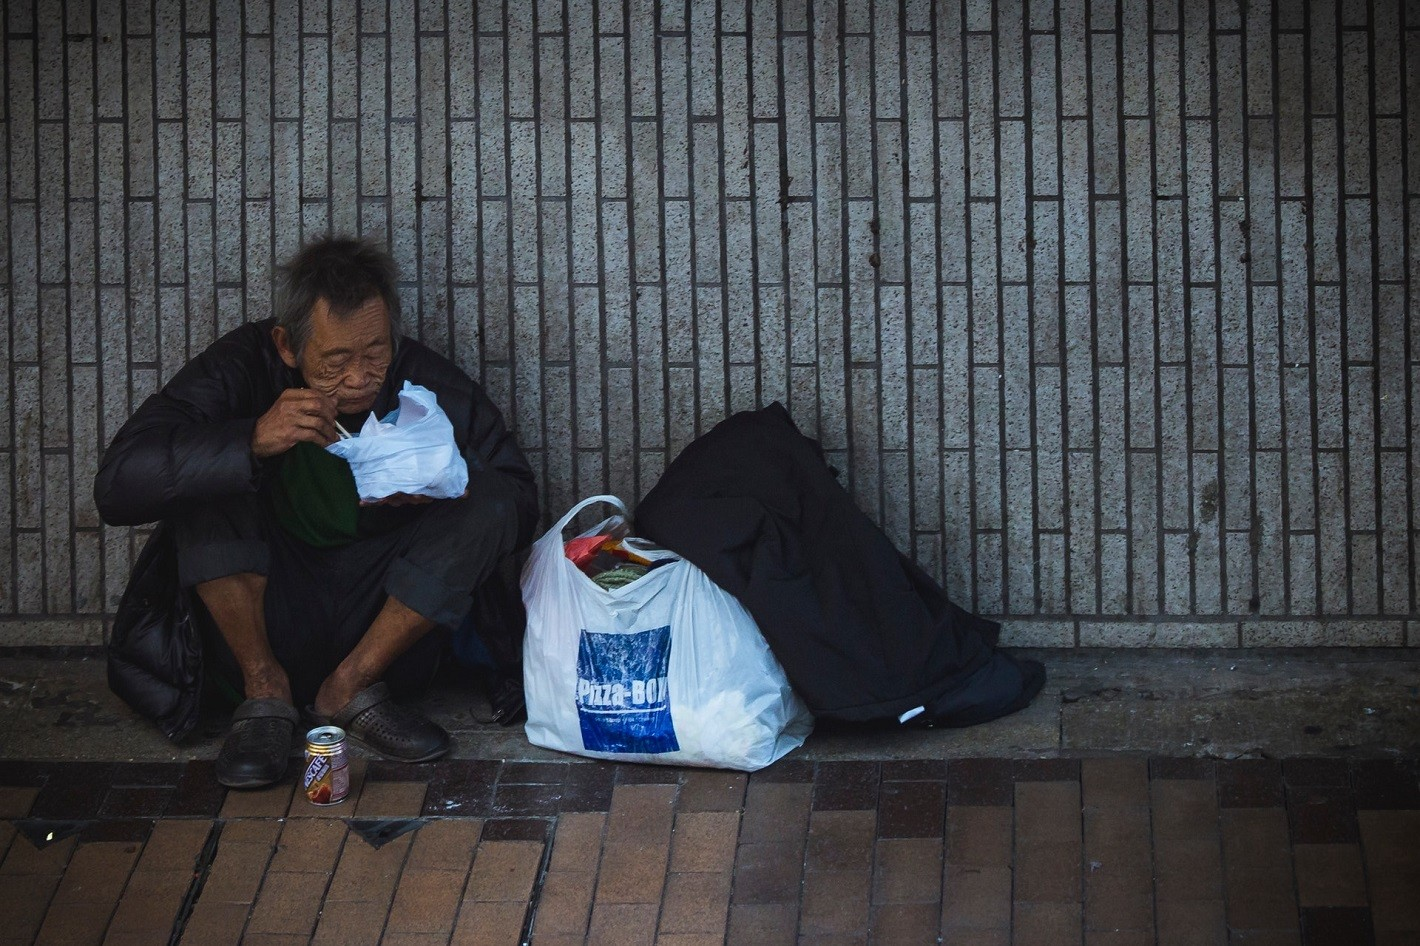 homeless man eating in the street